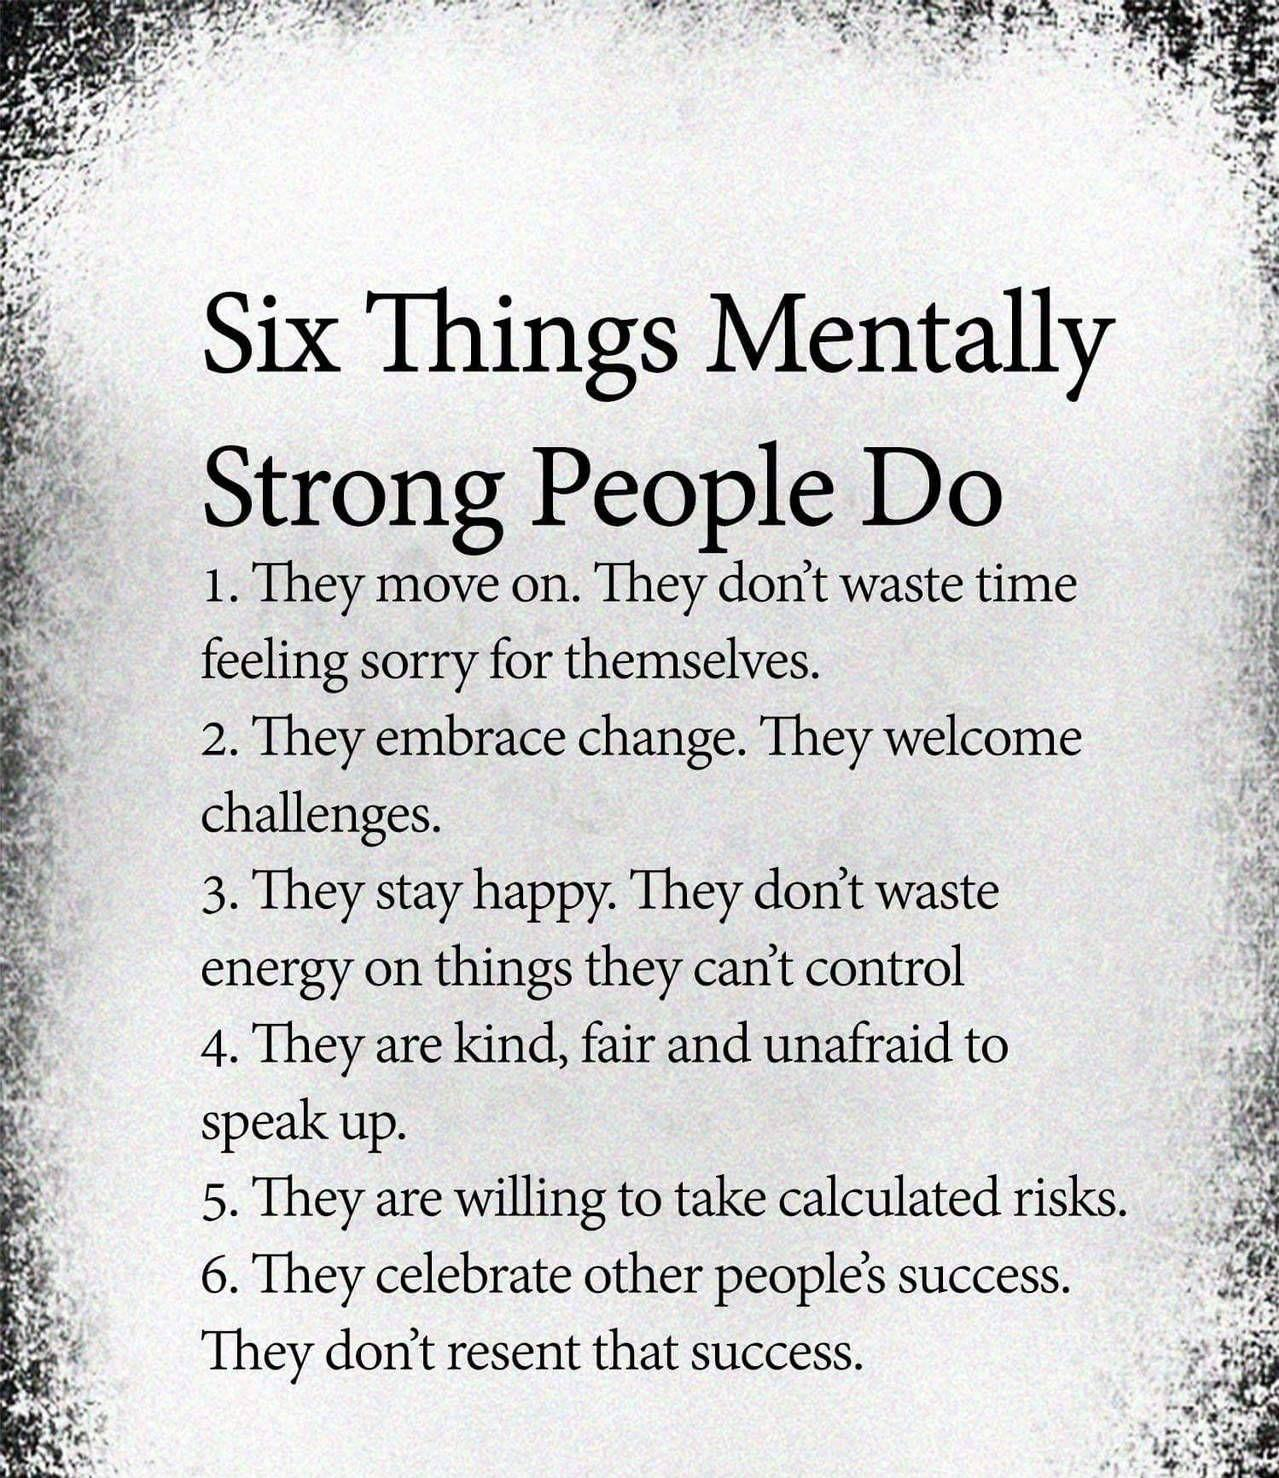 Six Things Mentally Strong People Do 1. They move on. They don't waste time feeling sorry for themselves. 2. They embrace change. They welcome challenges. s... 3. They stay happy. They don't waste . ; energy on things they can't control 4. They are kind, fair and unafraid to 7 '. speak up. . 2'16 5. They are willing to take calculated risks. $155 6. They celebrate other people's success. .' :9 They don't resent that success. https://inspirational.ly